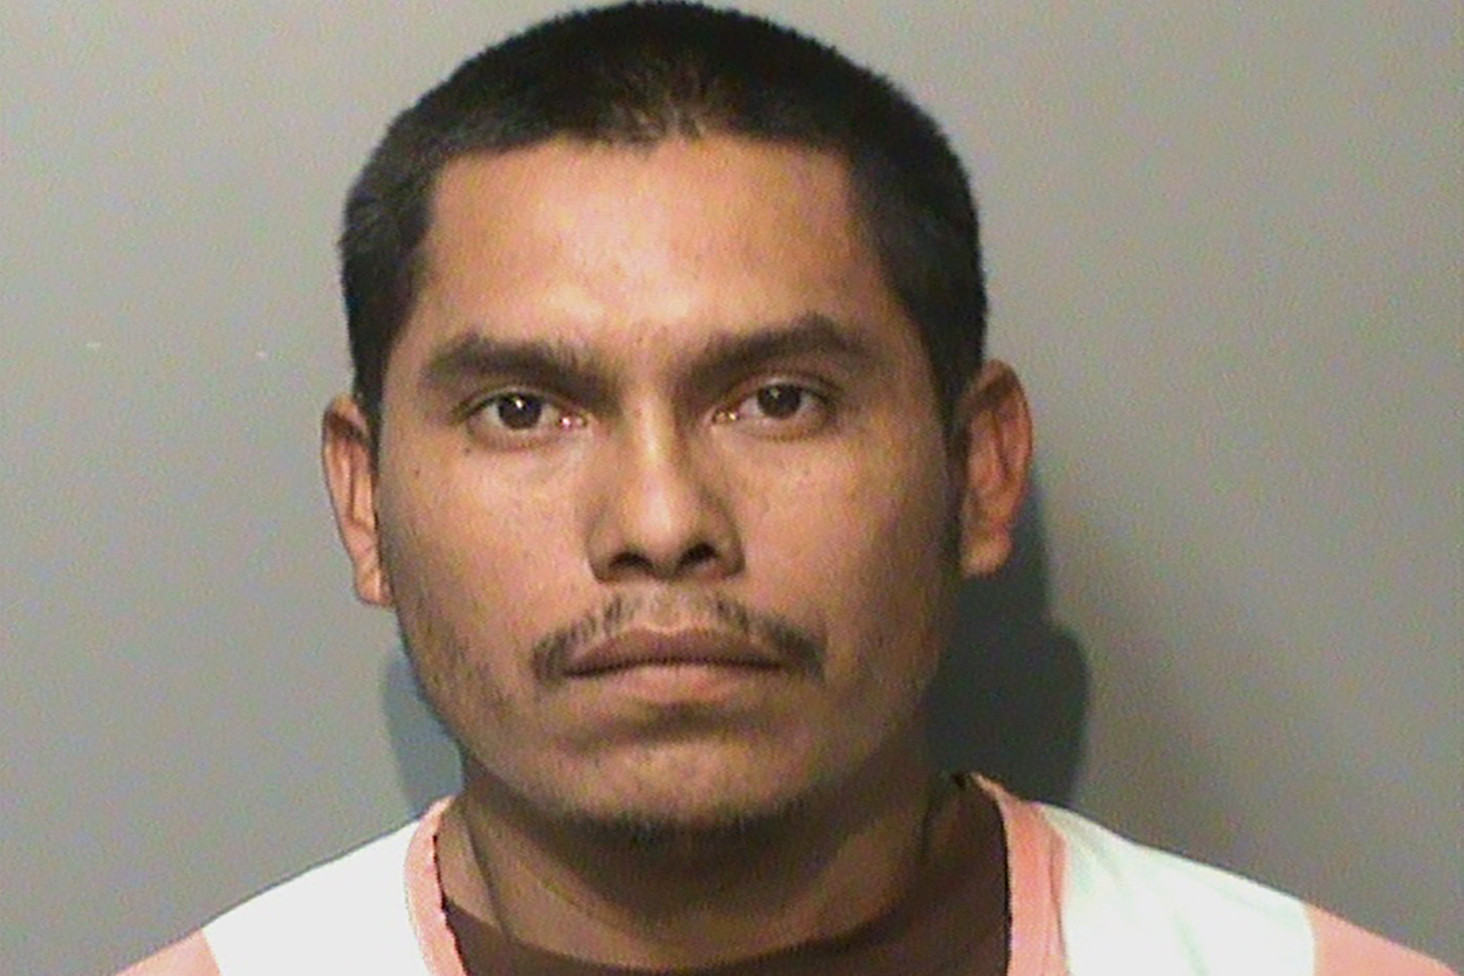 Feds: Man charged with killing 3 had been deported twice